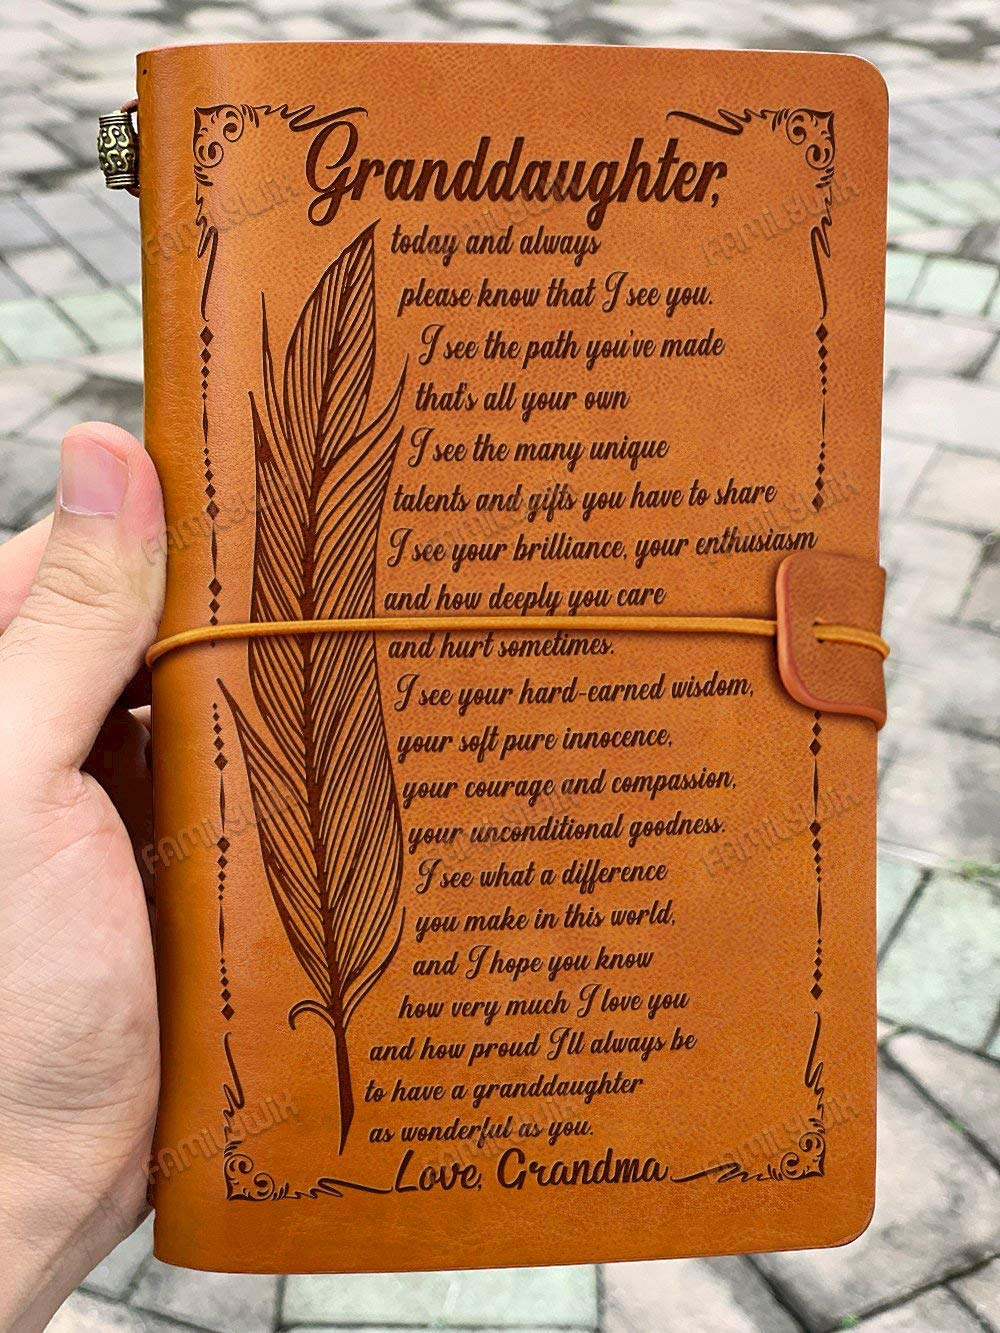 Grandma To Granddaughter, How Much I Love You Leather Journal SX57, 7.5''x4.7''Writing Notebook - Bound Daily Notepad For Men & Women-Refillable Paper-Best Gift for Christmas,Birthdays by Sense Gifts